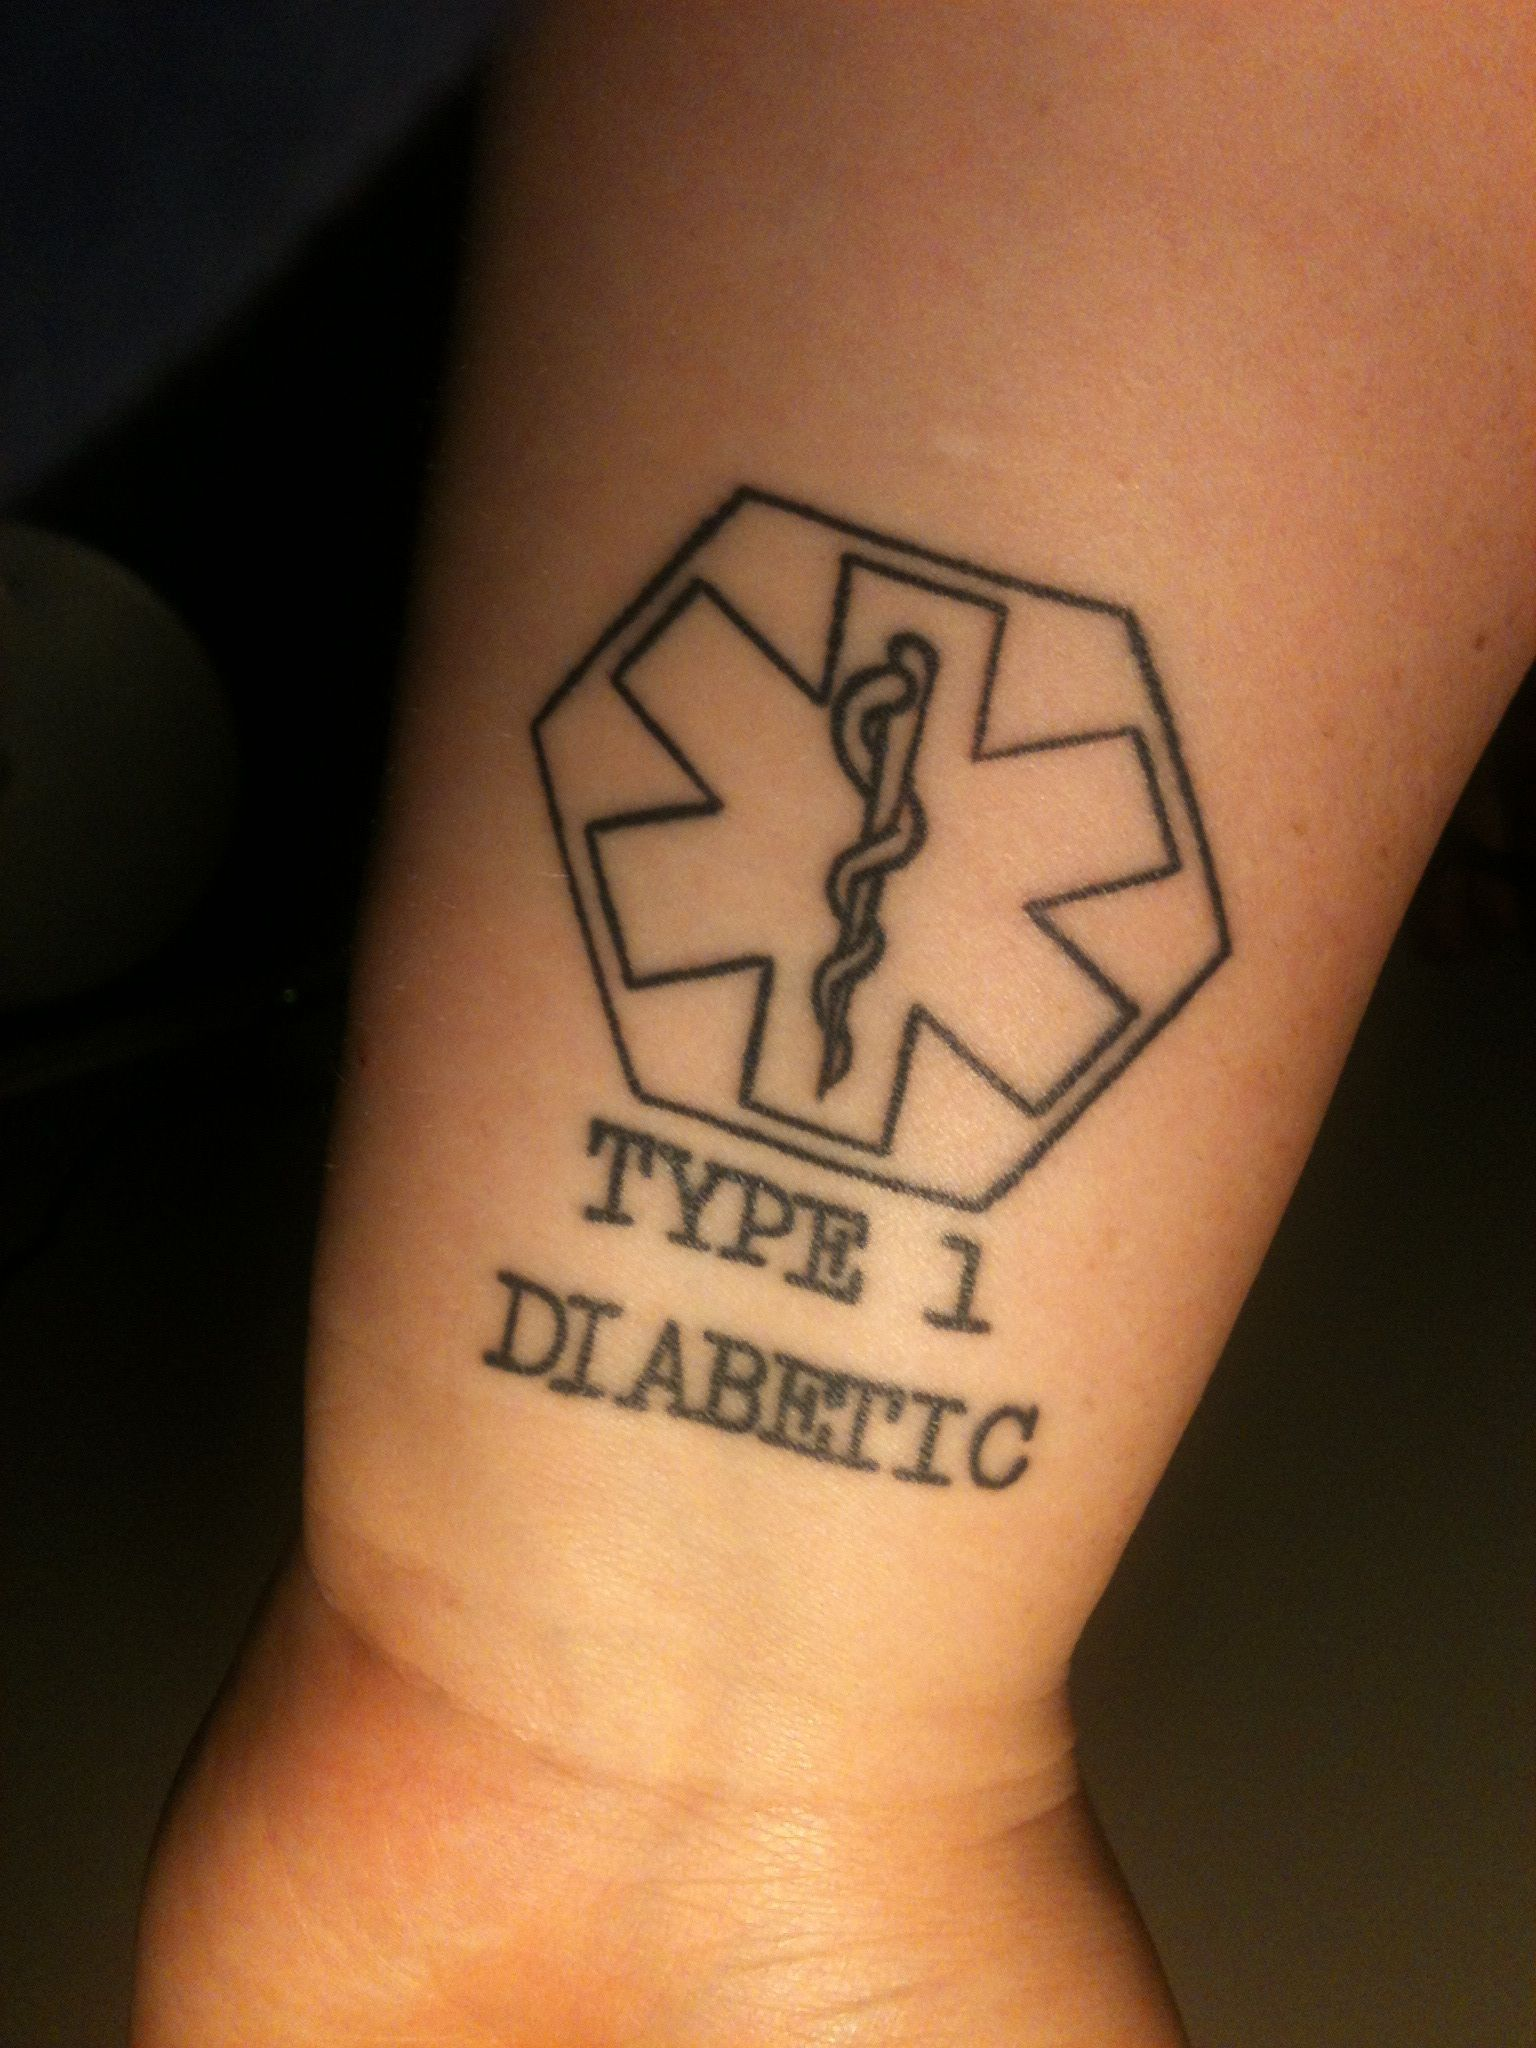 Medical Alert Type 1 Diabetic Tattoo Done By Brian At Ideas And Designs